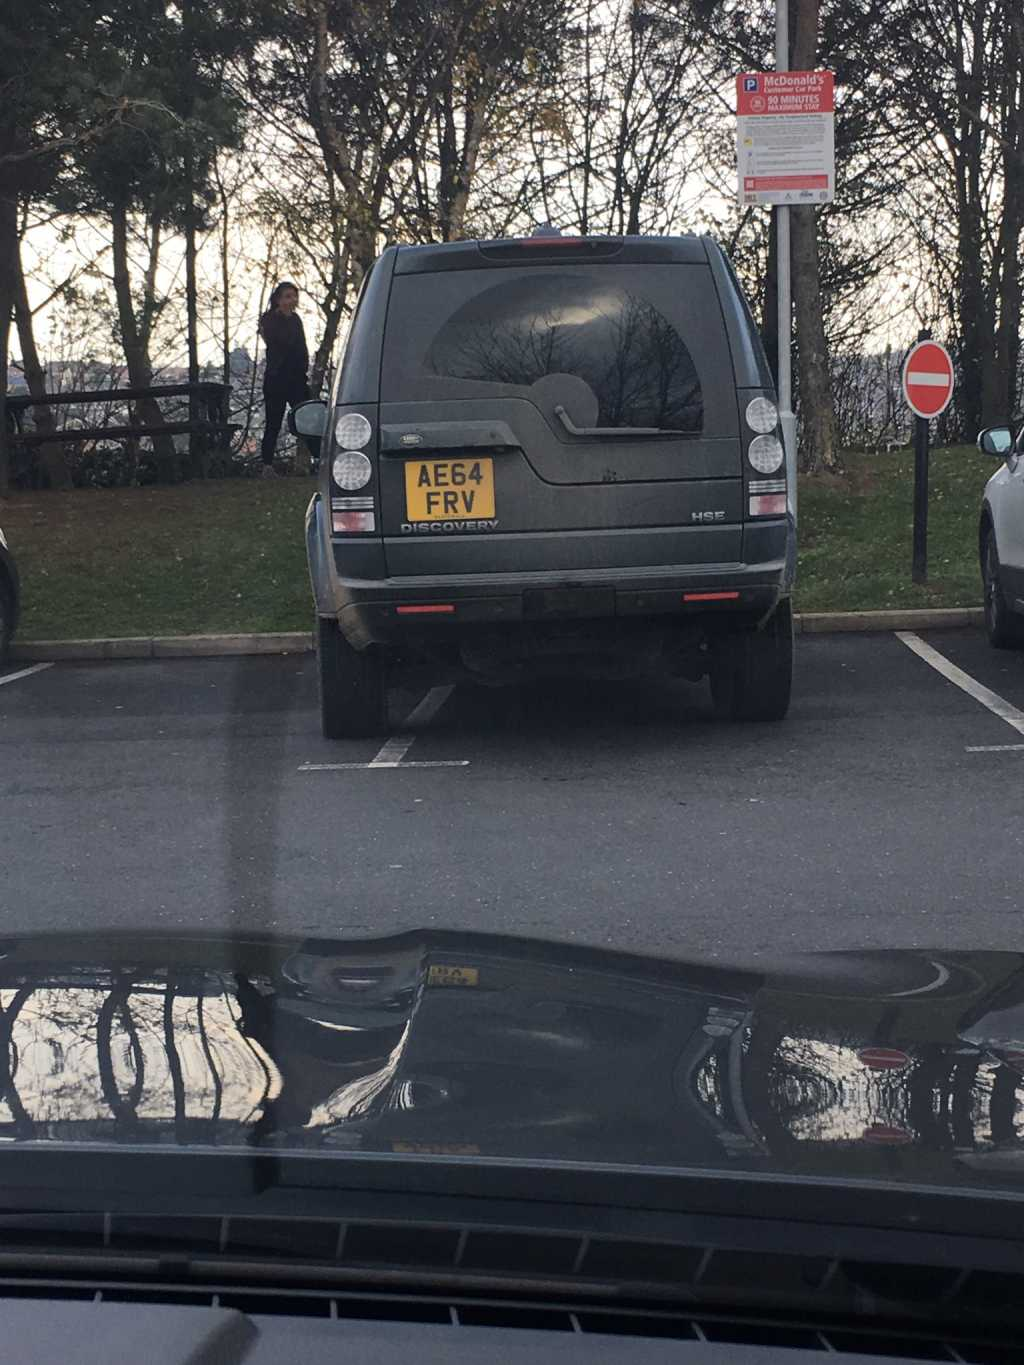 AE64 FRV displaying Inconsiderate Parking